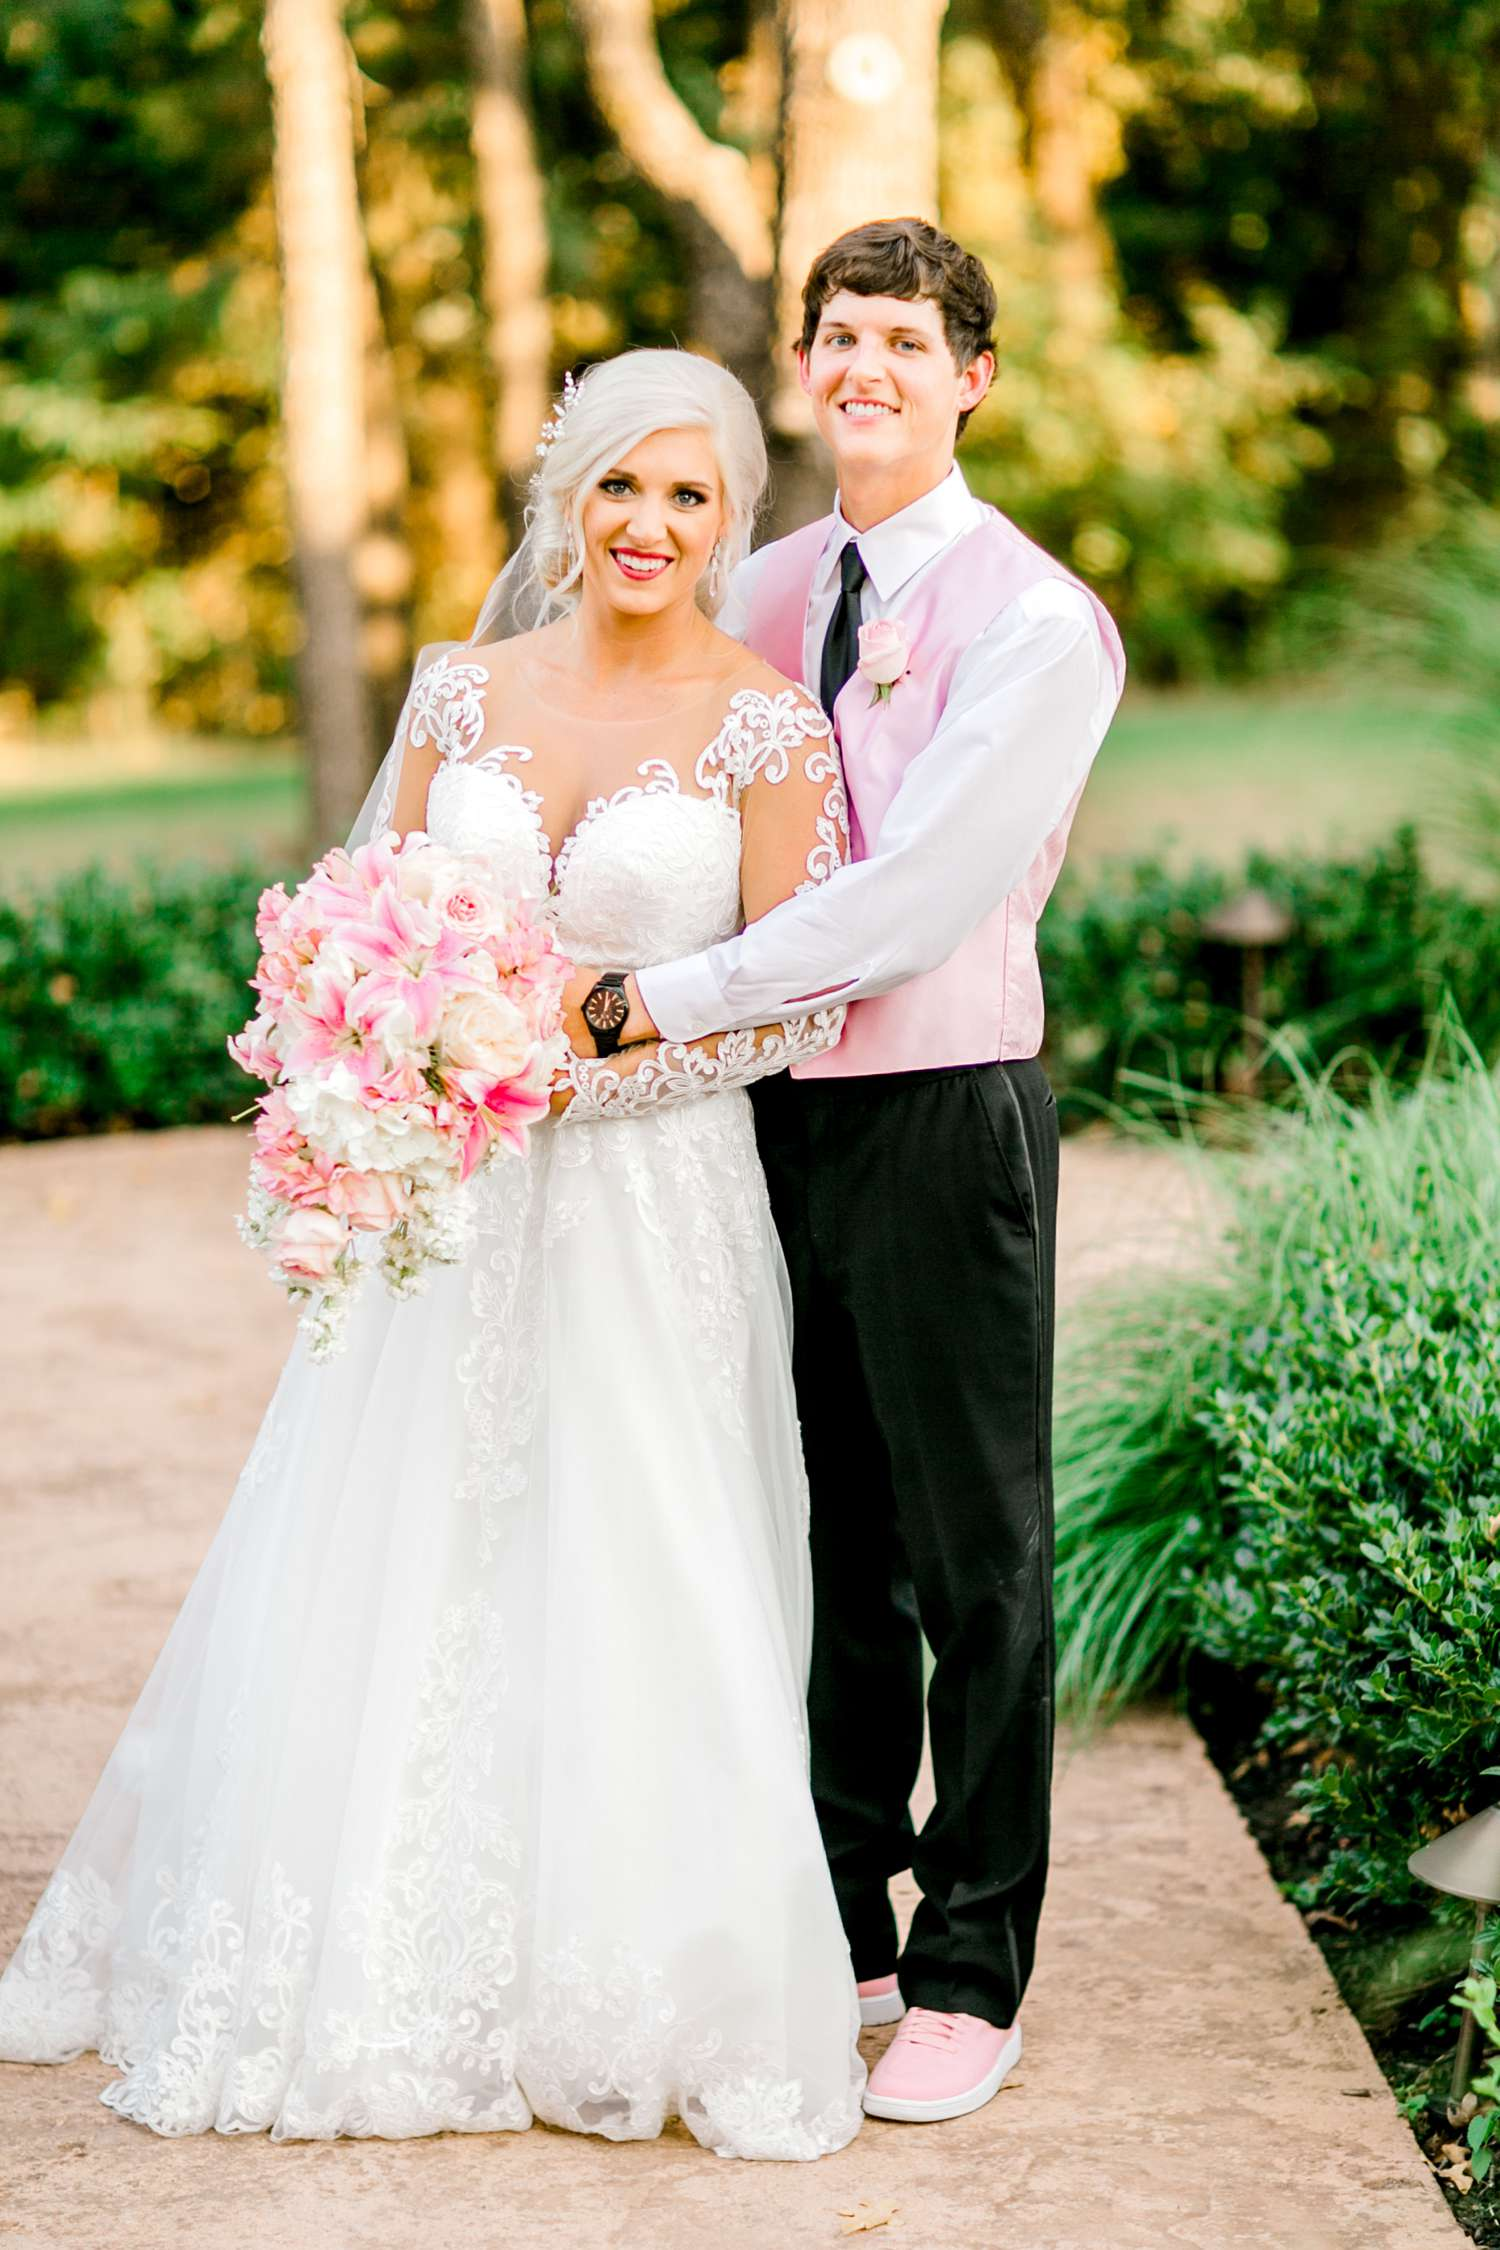 JESSICA+LYLE+NEEL+THE_SPRINGS_EVENTS_WEDDING_OKLAHOMA_ALLEEJ_PHOTOGRAPHER_0101.jpg